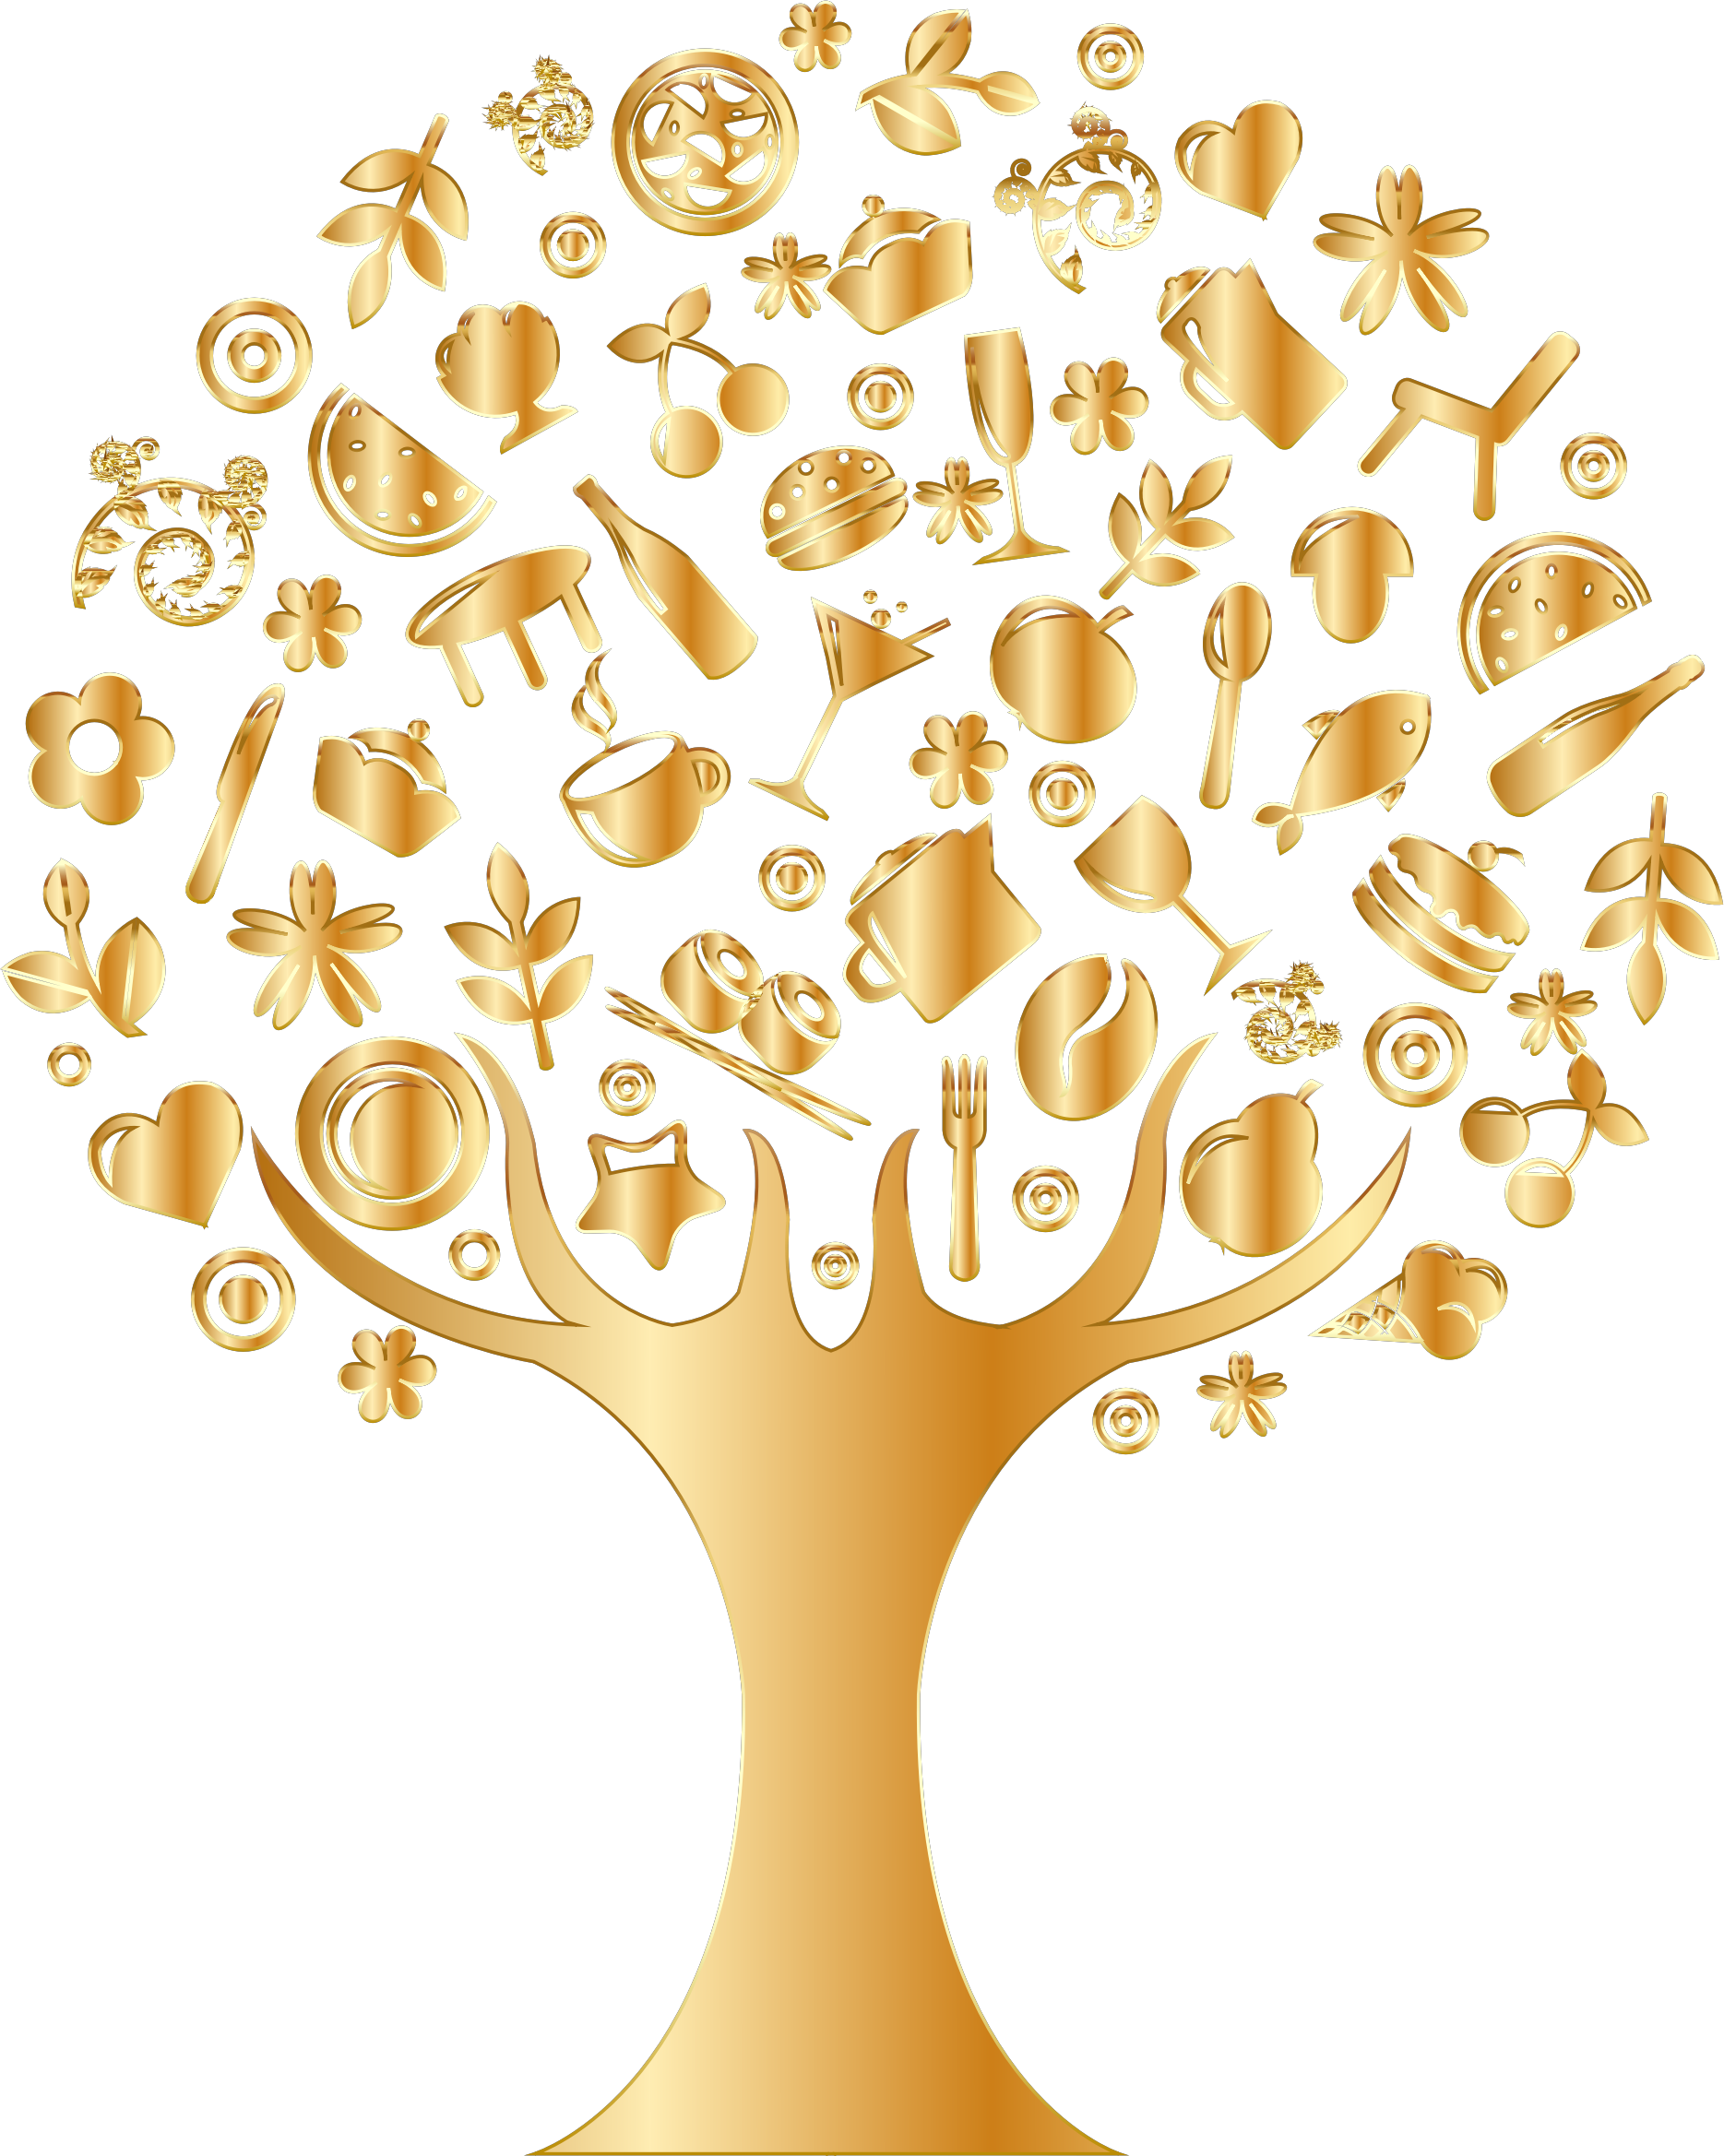 Gold abstract no background. Dog clipart tree